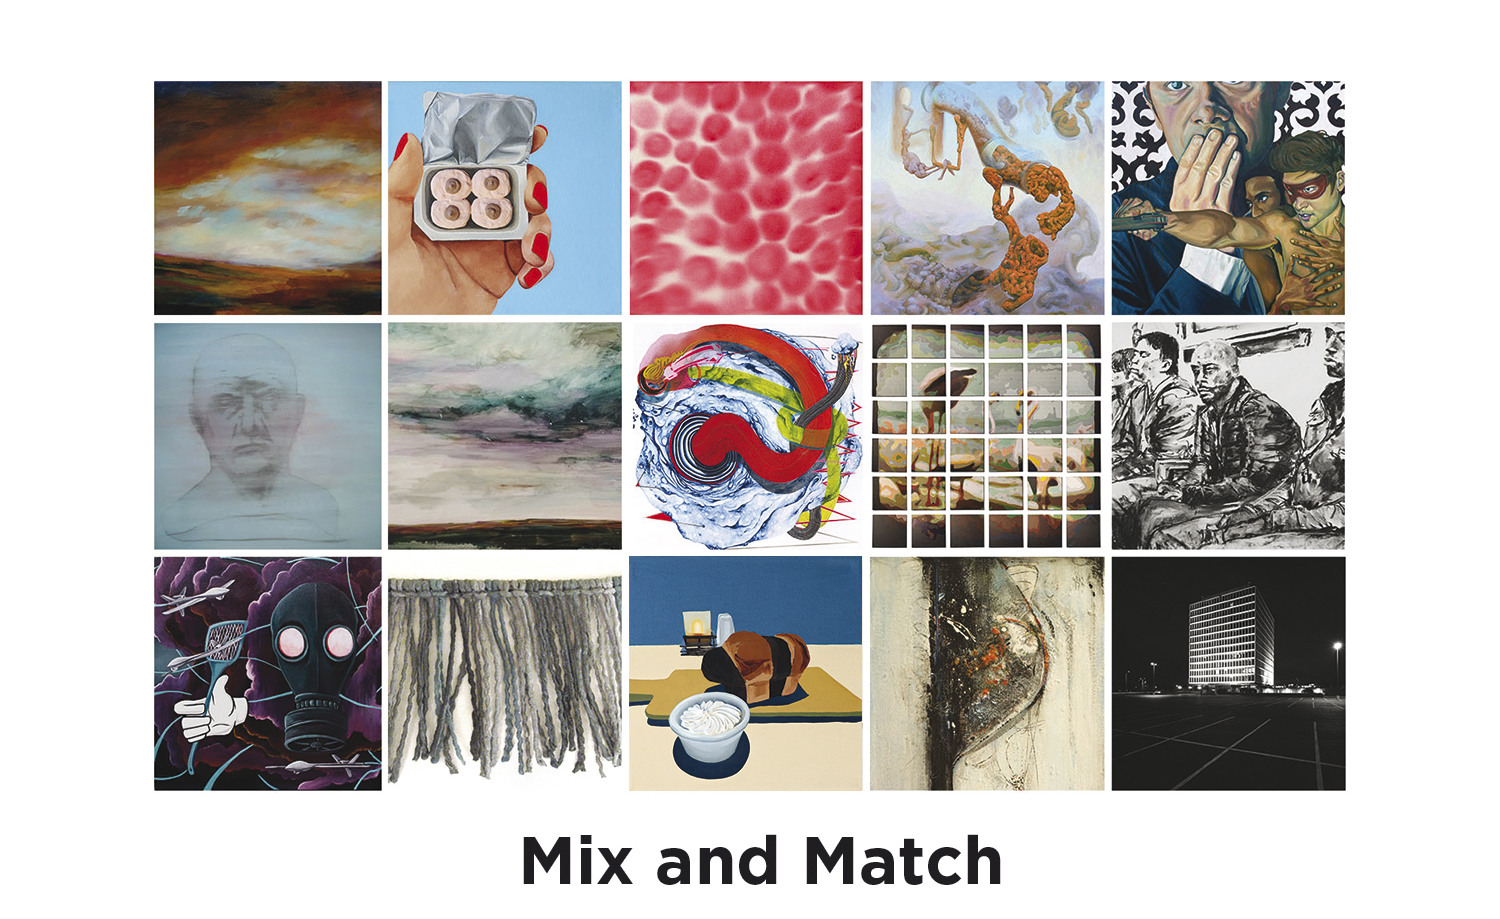 Mix and Match - January 8 – February 24, 2018